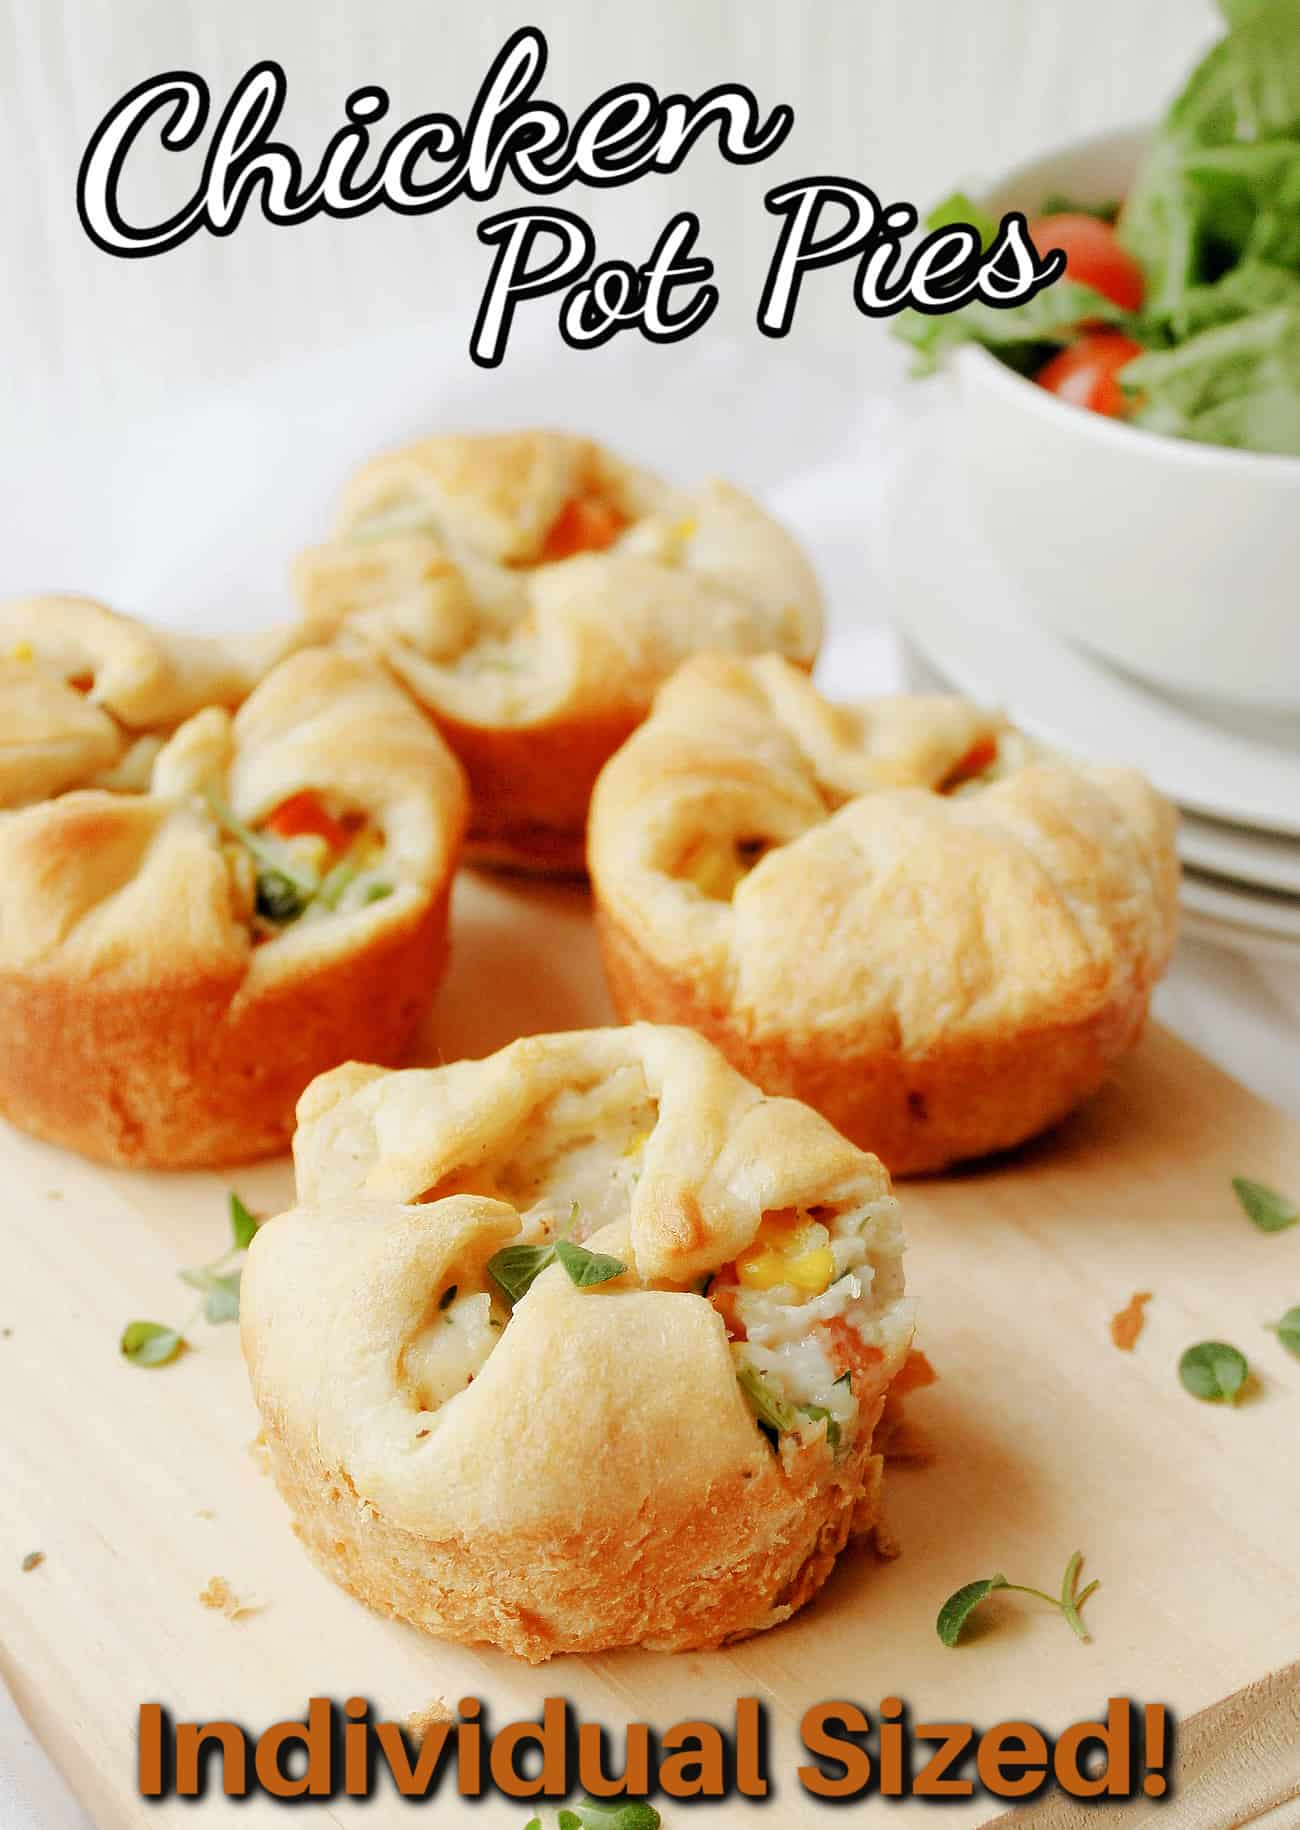 mini chicken pot pies on a cutting board with text